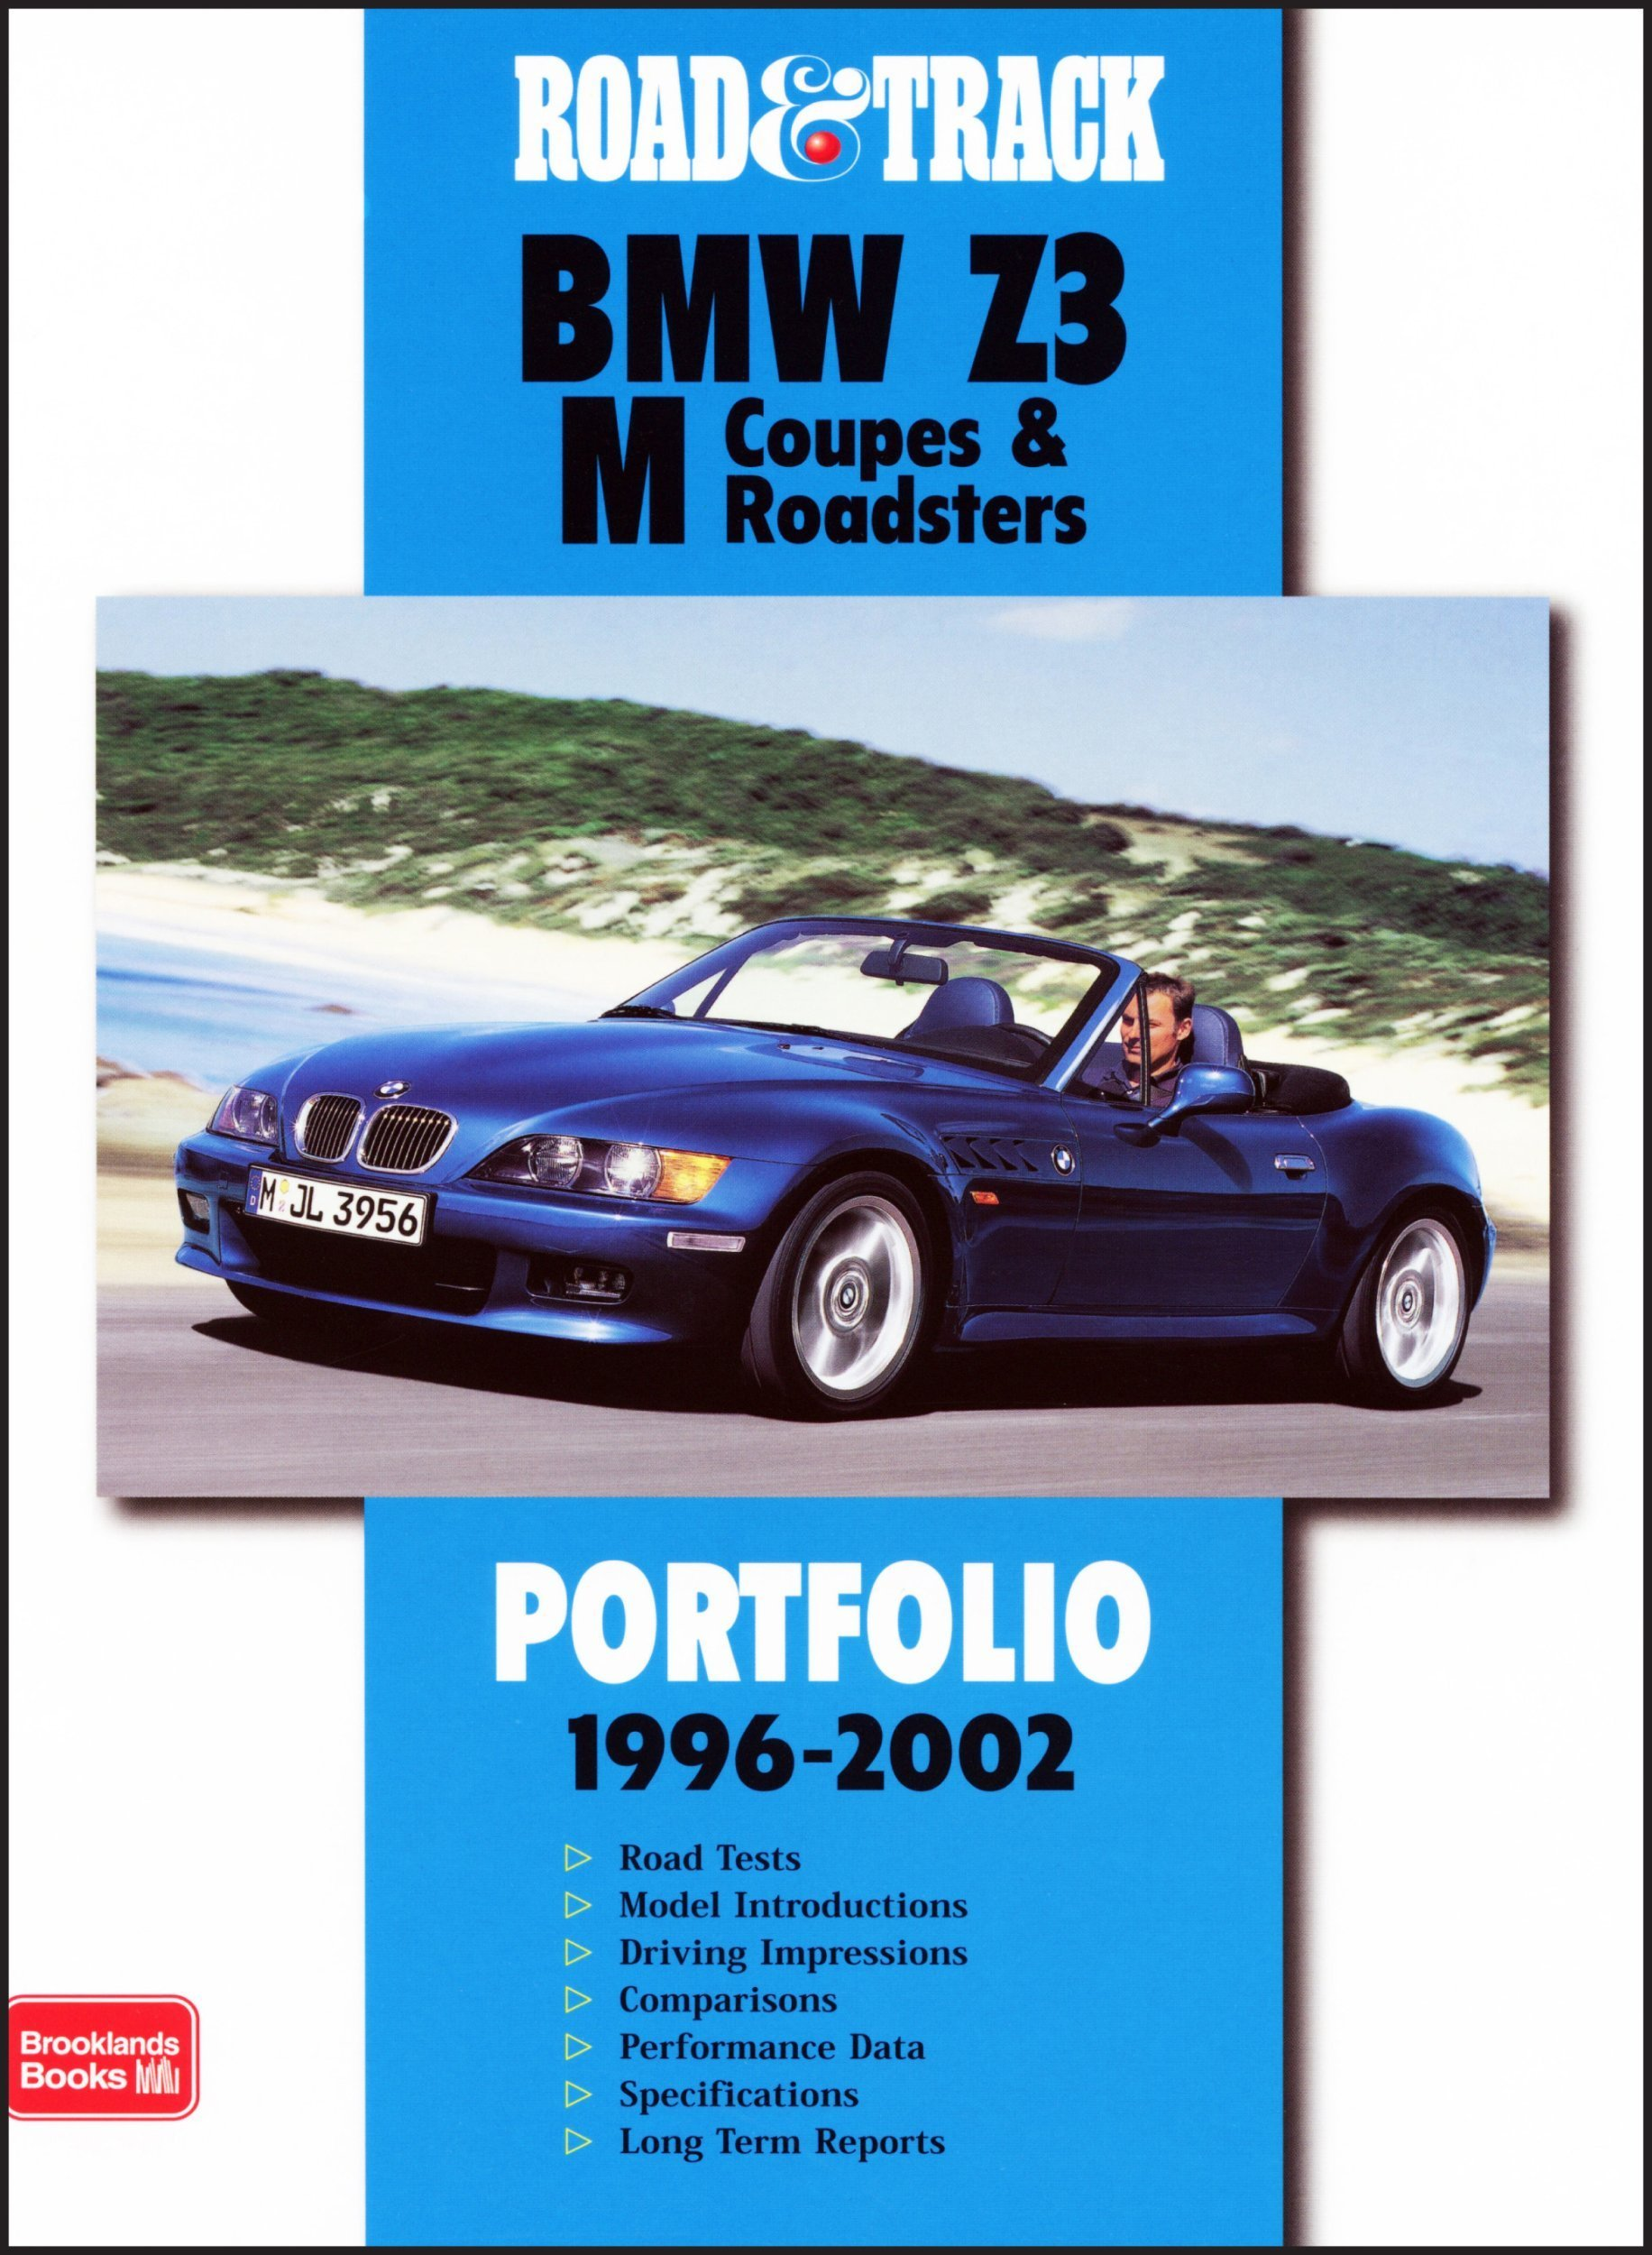 Download Road & Track BMW Z3 M Coupes & Roadsters (Road and Track Portfolio) pdf